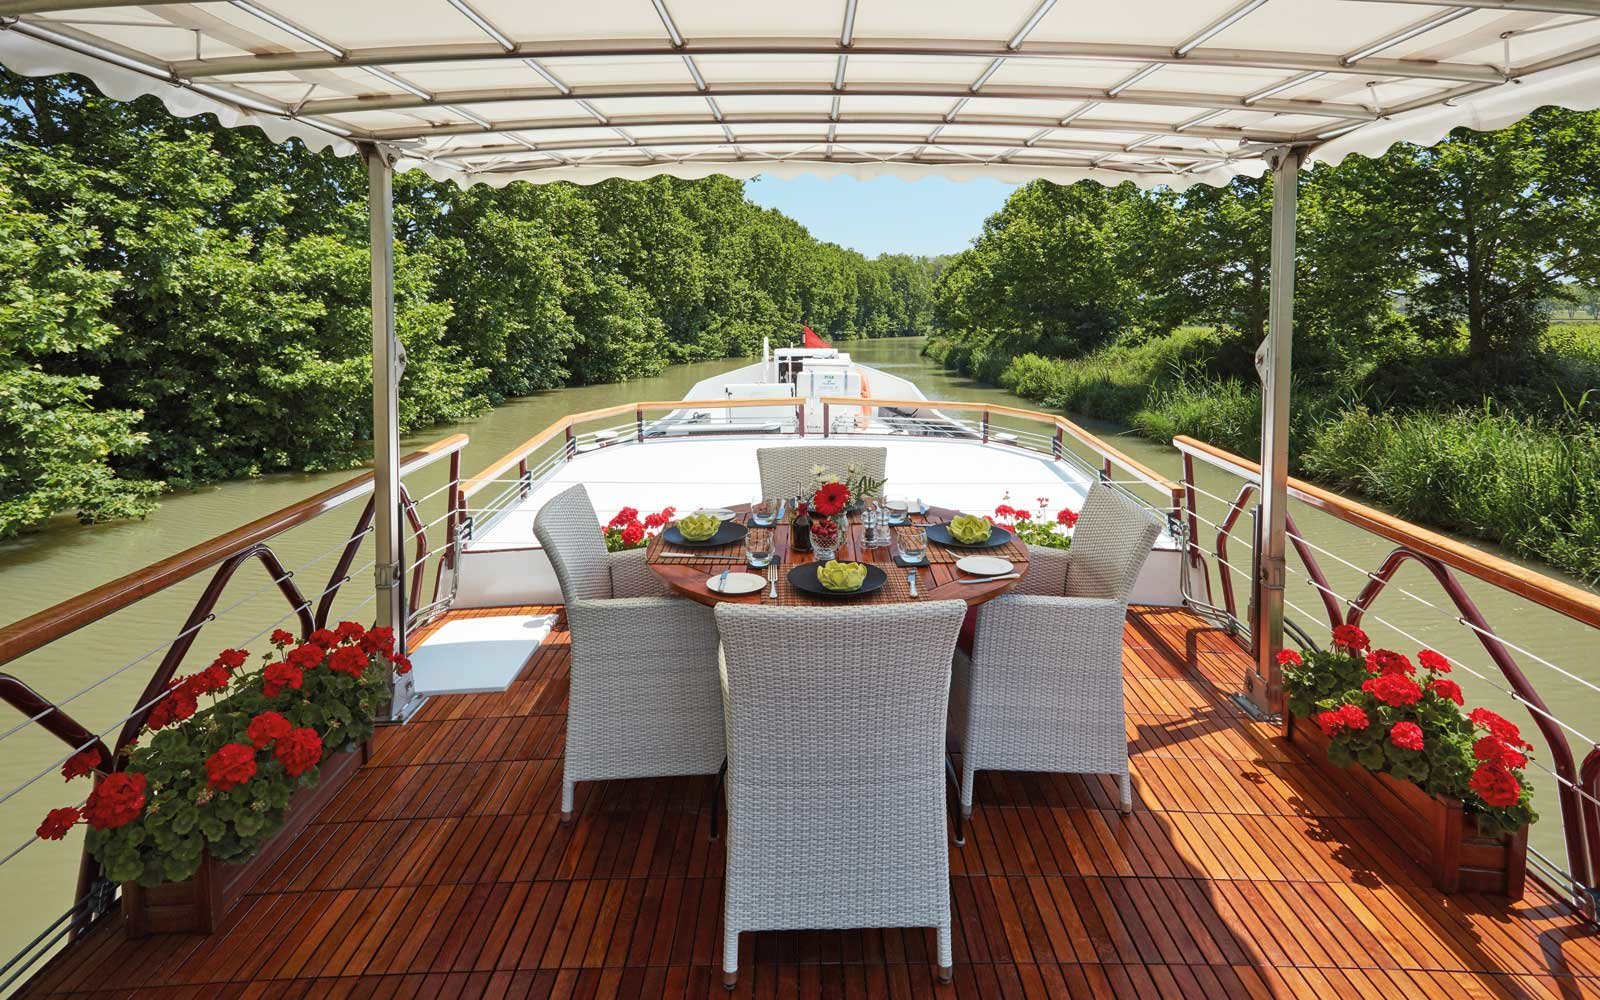 Cruising on a small Belmond barge in France